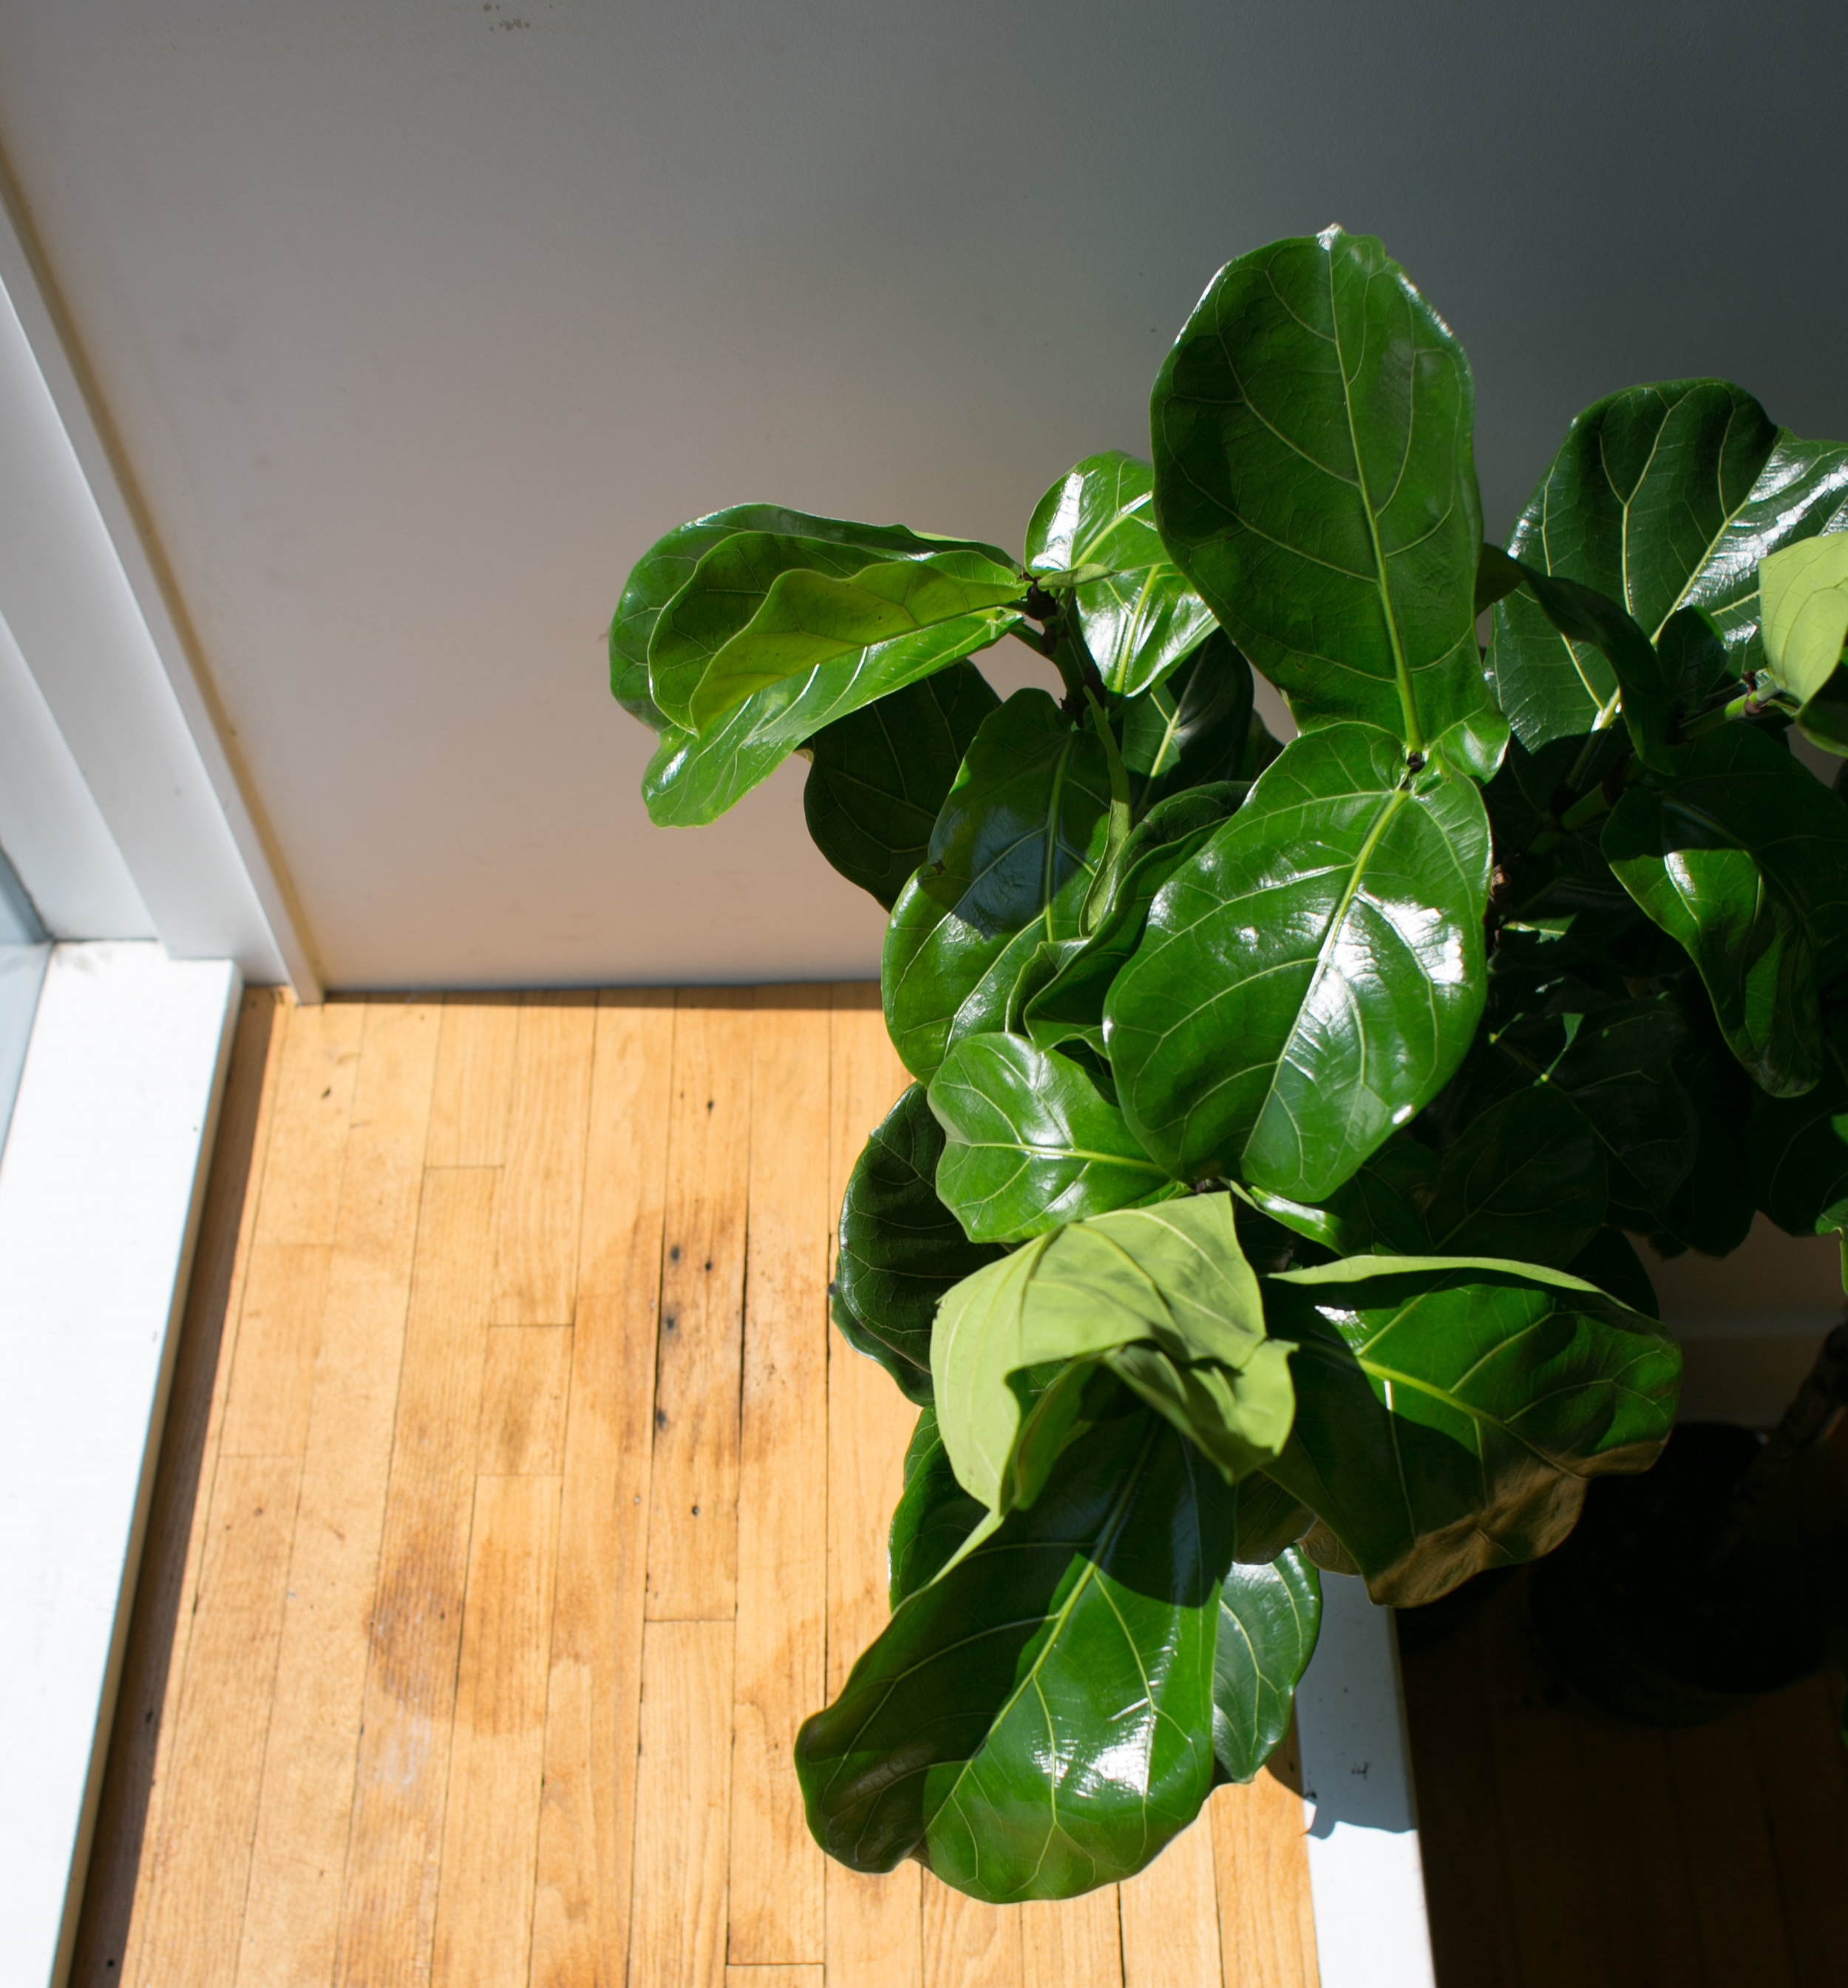 Plants appear green because chlorophyll absorbs all colors in the light spectrum, except green.